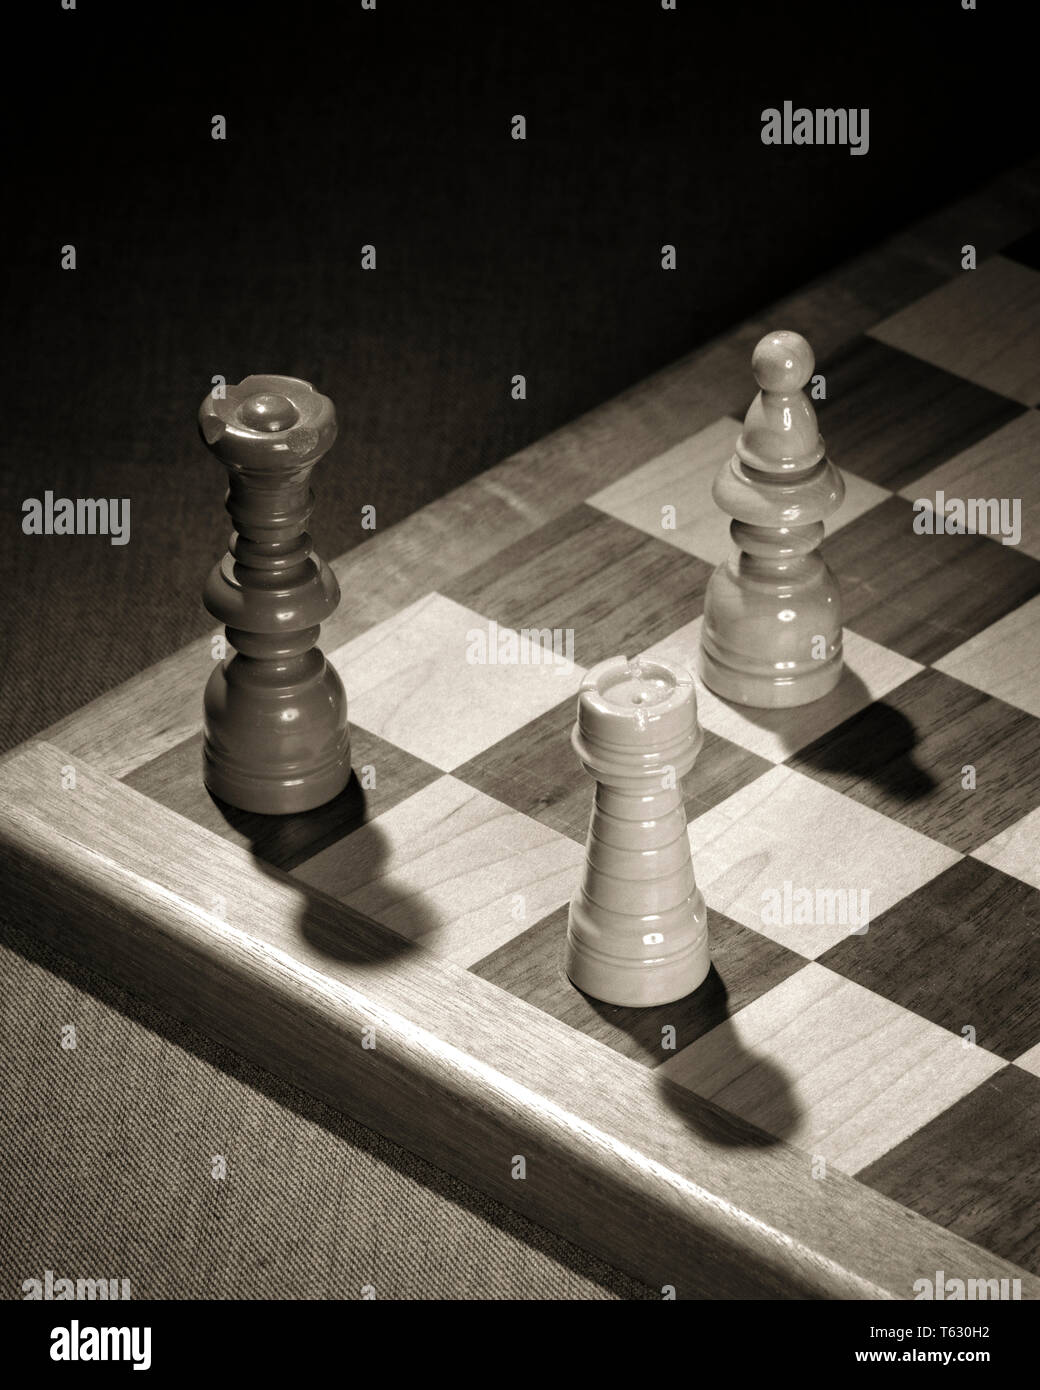 1960s CHECKMATE THREE CHESS PIECES SHOW OPPOSING BLACK KING HELD IN CHECK THREATENED WITH CAPTURE BY THE WHITE BISHOP AND ROOK - s15260 HAR001 HARS THREATENED ESCAPE ROOK SYMBOLIC CHECKMATE CONCEPTS OPPOSING SOLUTIONS BISHOP BLACK AND WHITE CAPTURE HAR001 OLD FASHIONED PERSONIFICATION REPRESENTATION - Stock Image